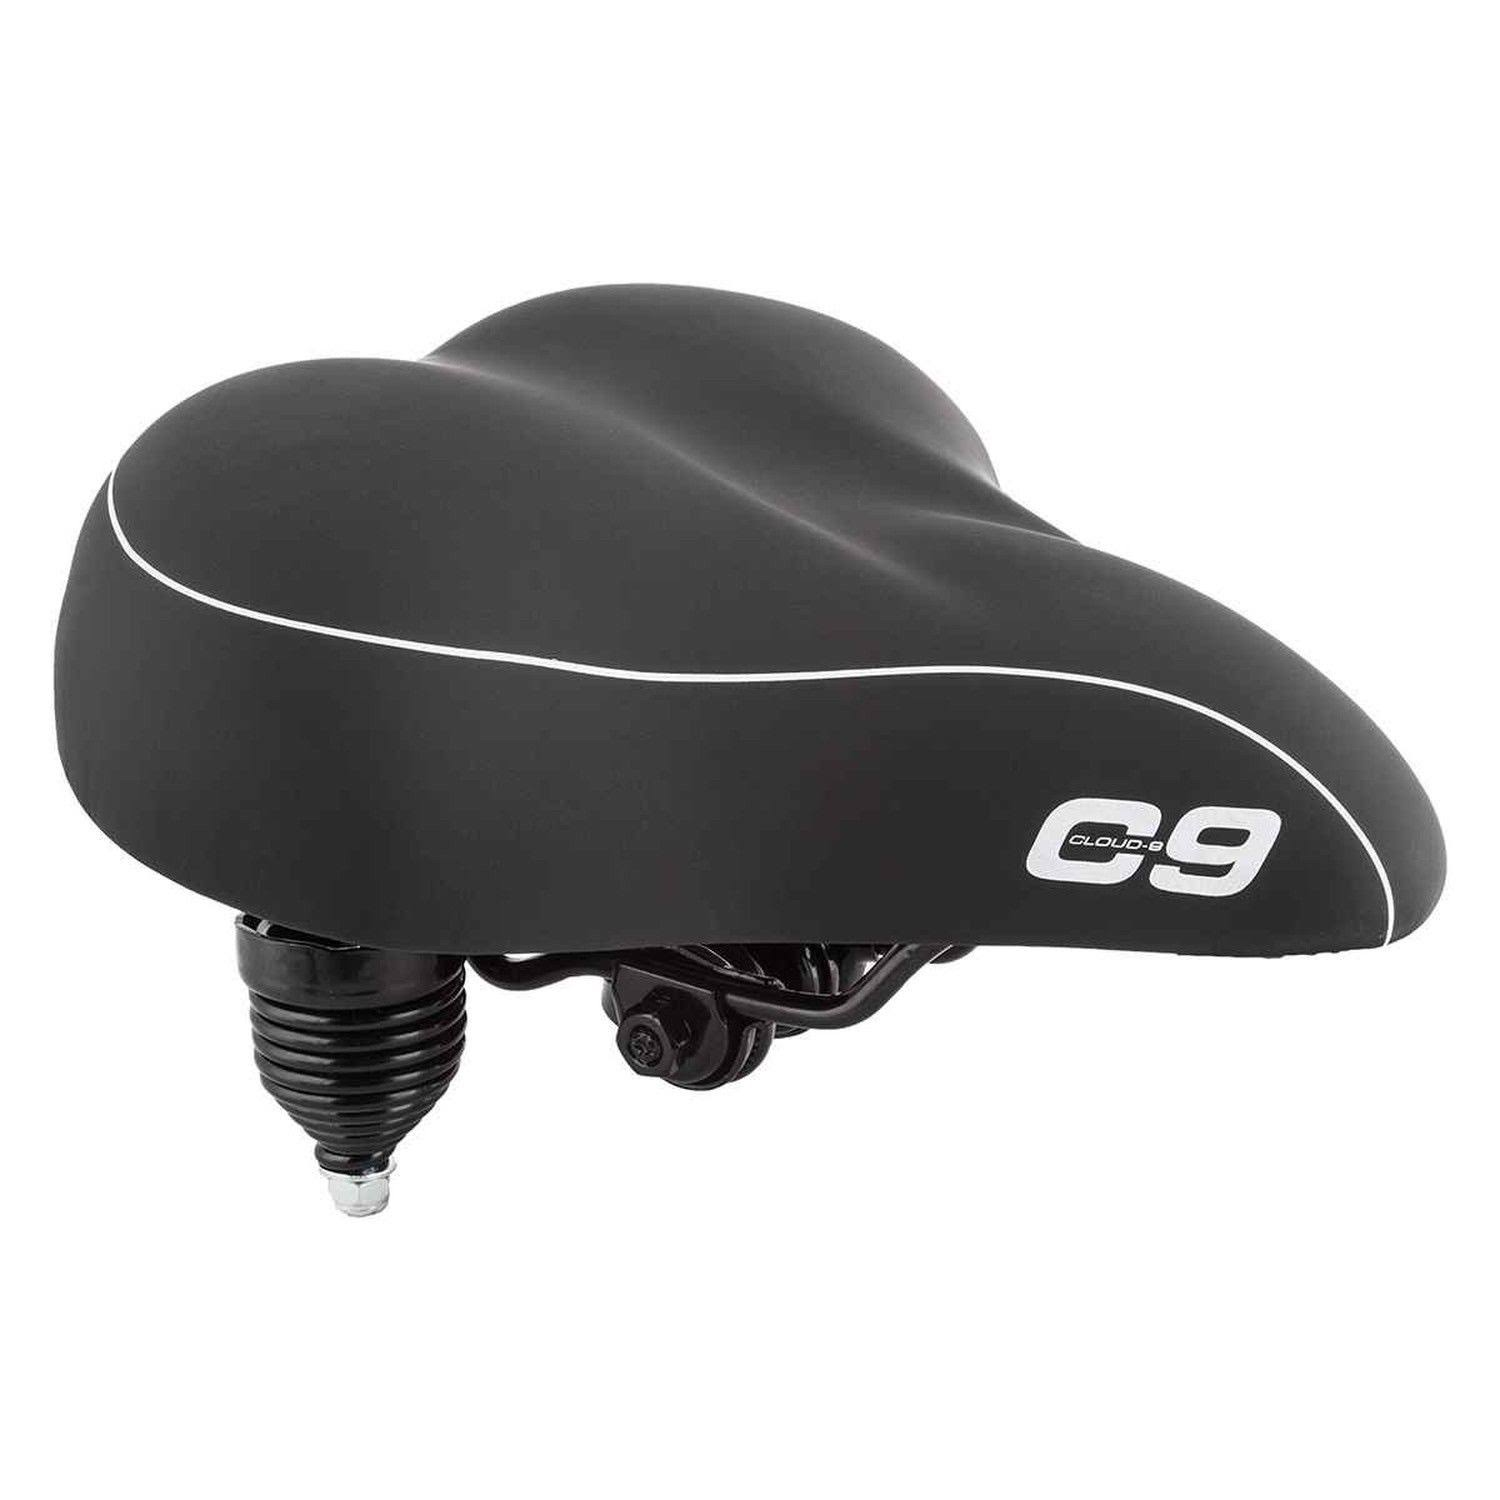 Sunlite Cloud-9 Suspension Comfort Gel Cruiser Saddle